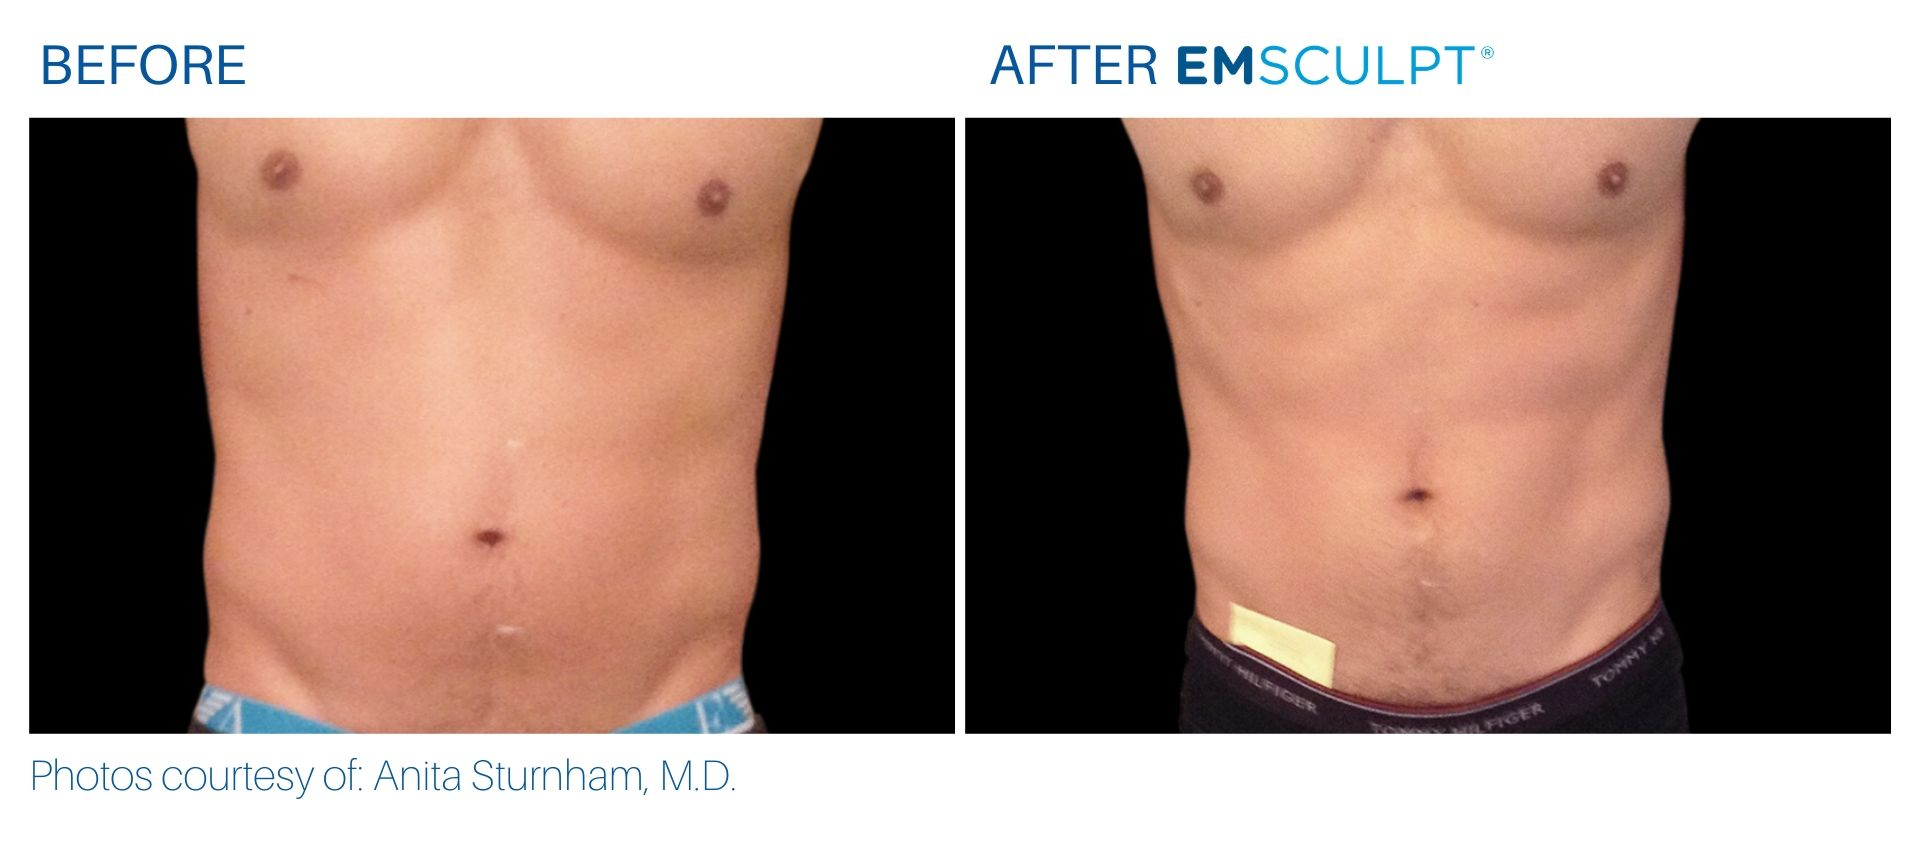 Emsculpt build muscles before and after result Aura Dermatology in Robbinsville, NJ